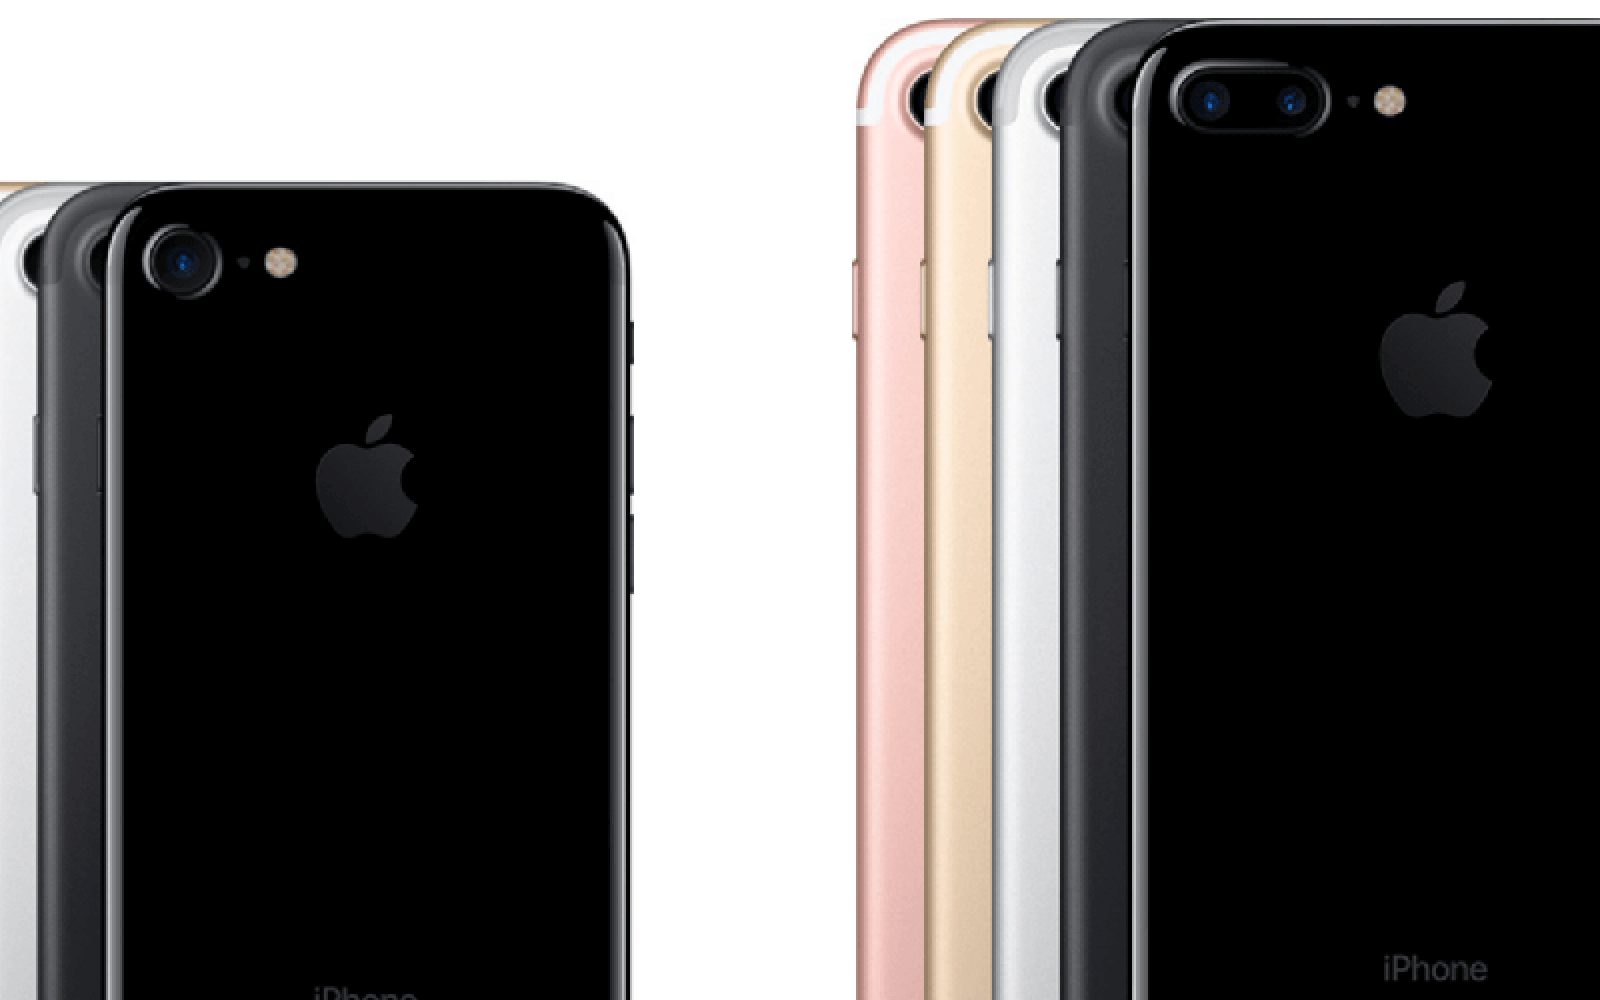 ccb447ad7ba iPhone 7 review roundup: the verdicts are in, and they are mixed ...